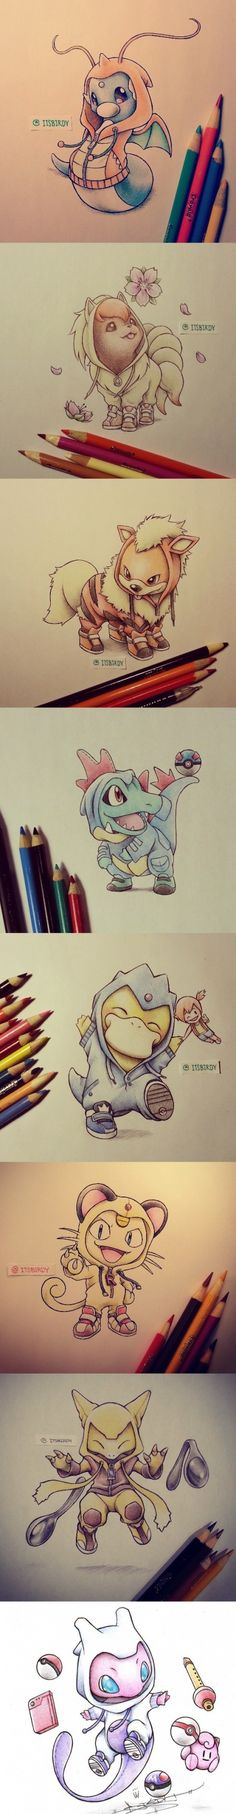 Pokemon in Onesies PART II by itsbirdy http://instagram.com/itsbirdy/#